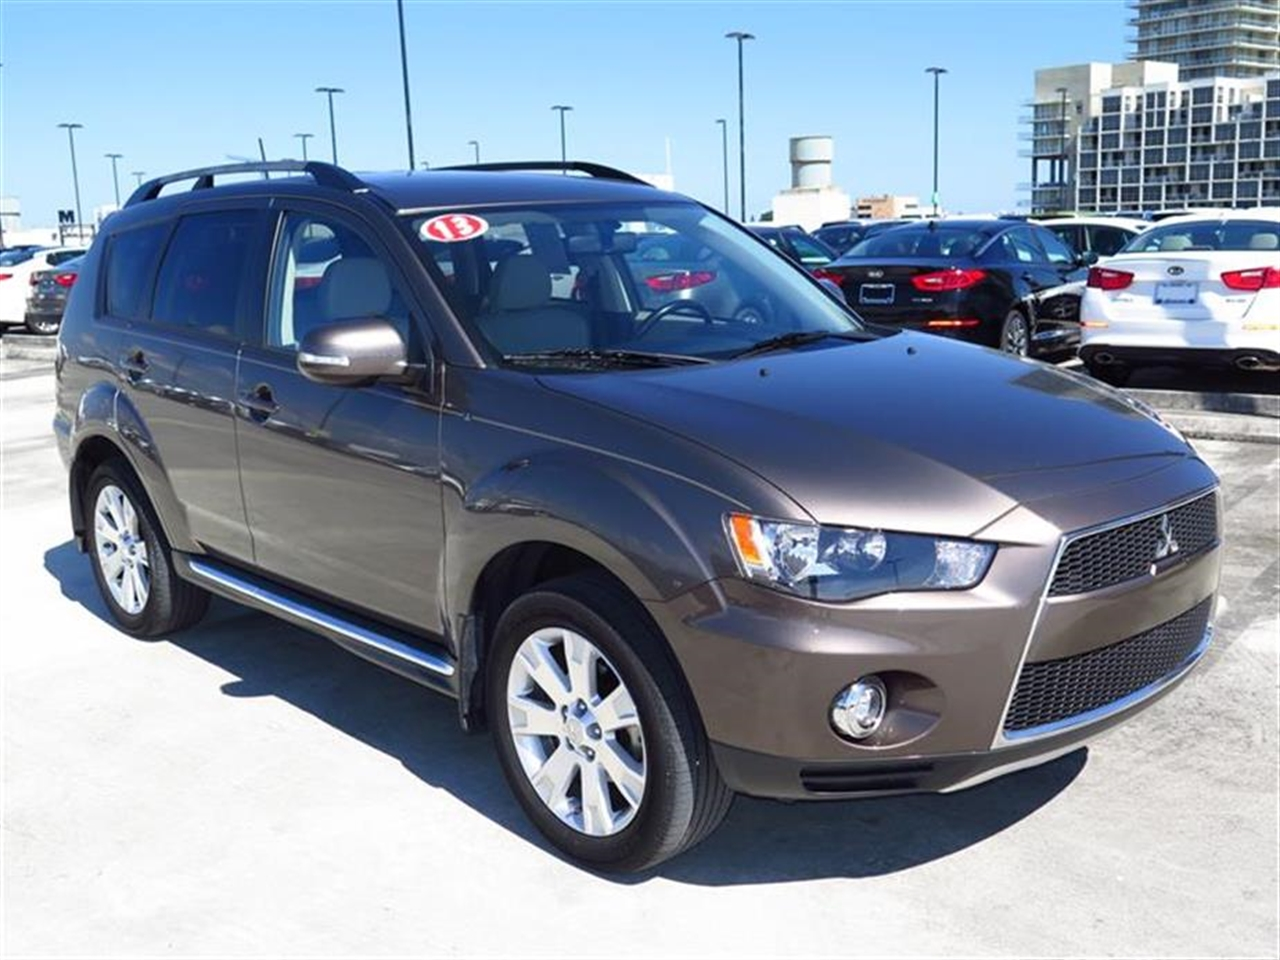 2013 Mitsubishi OUTL 2WD 4dr SE 22145 miles 3 12-volt accessory outlets 4 cargo area tie-down